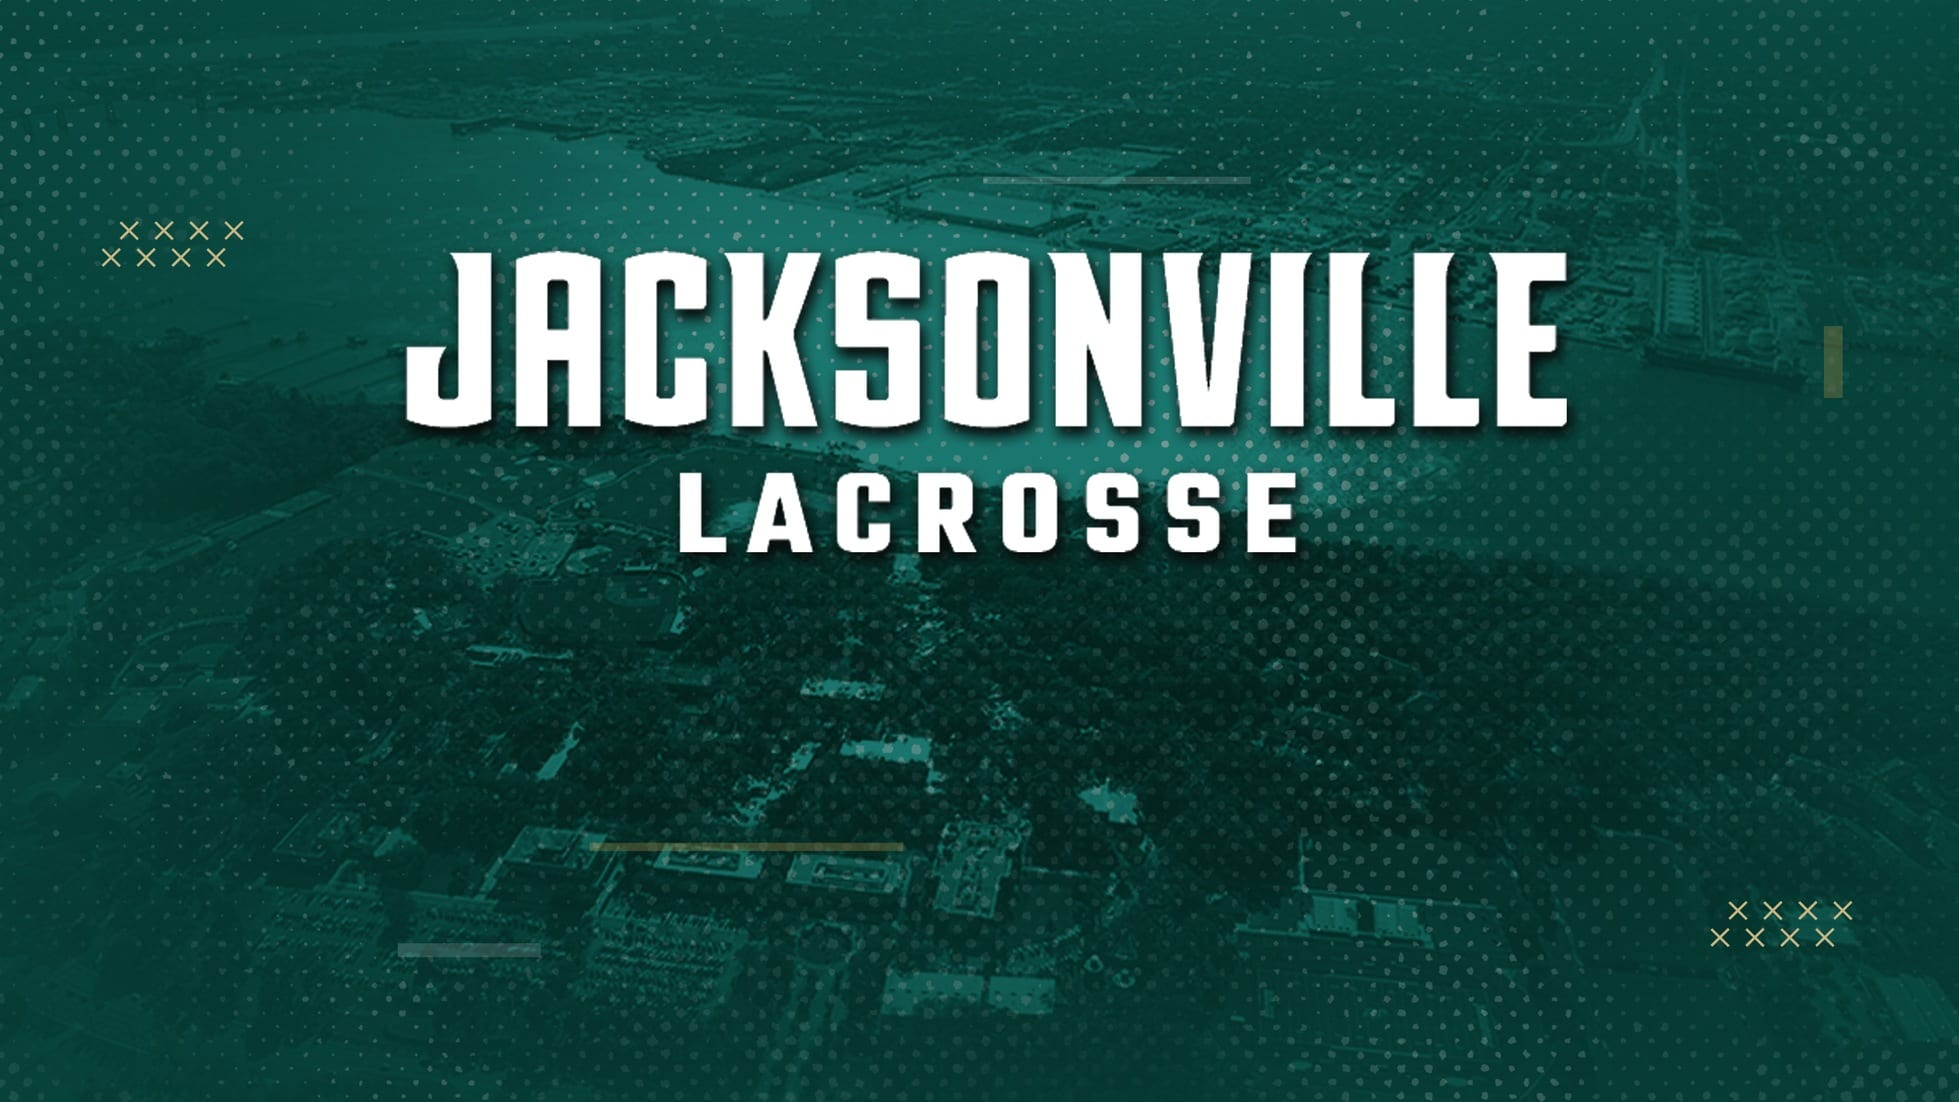 Jax WLAX Jacksonville women's lacrosse Inside the Podcast paul mccord coaching with cancer